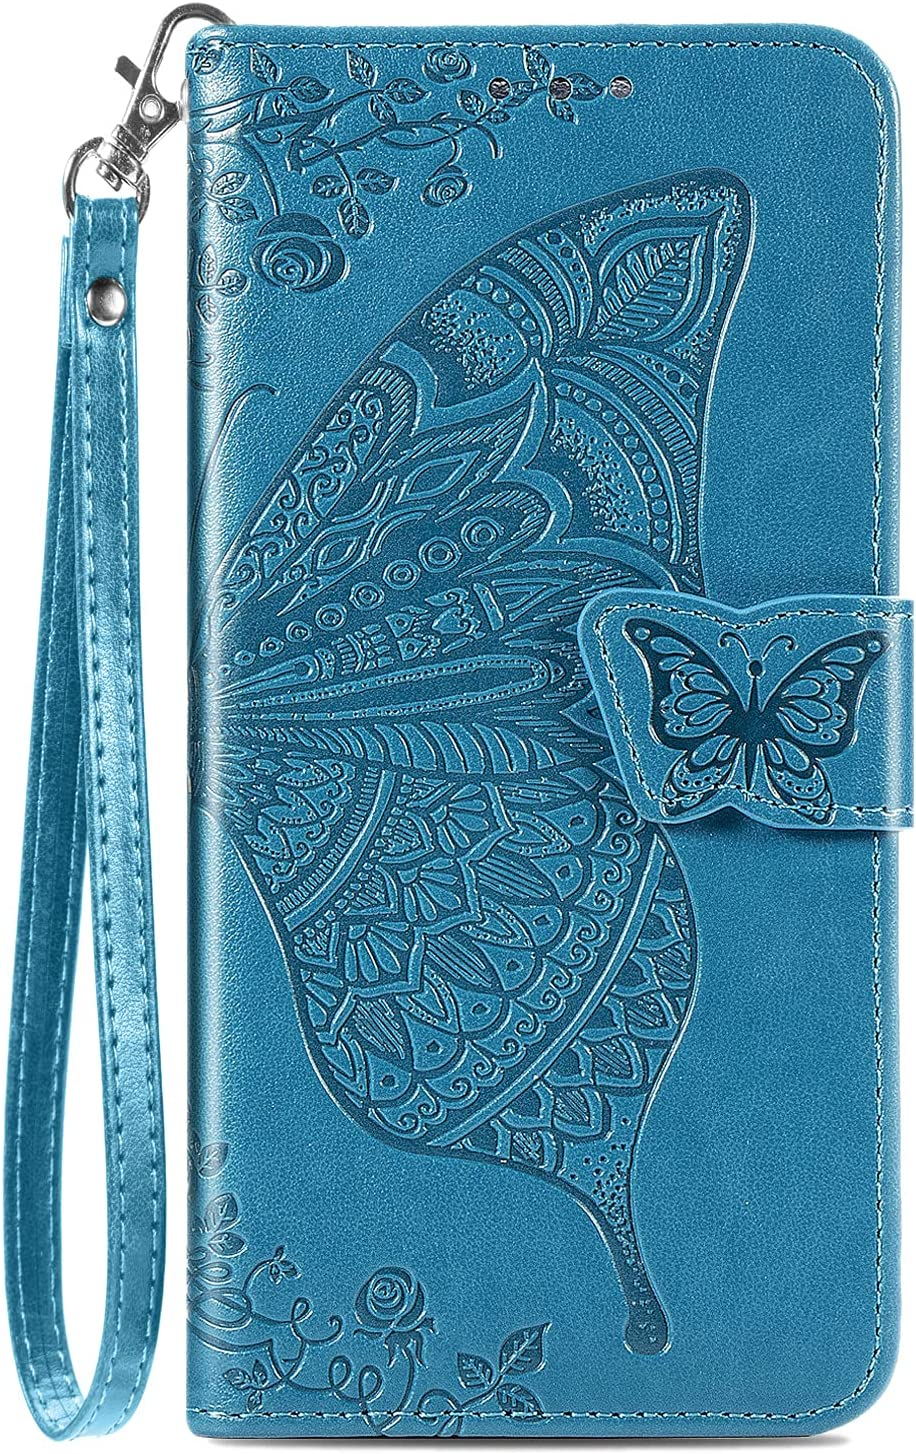 Galaxy A12 Wallet Case, [Butterfly & Flower Embossed] Leather Wallet Case Flip Protective Phone Cover with Card Slots and Kickstand for Samsung Galaxy A12 6.5-inch (Blue)